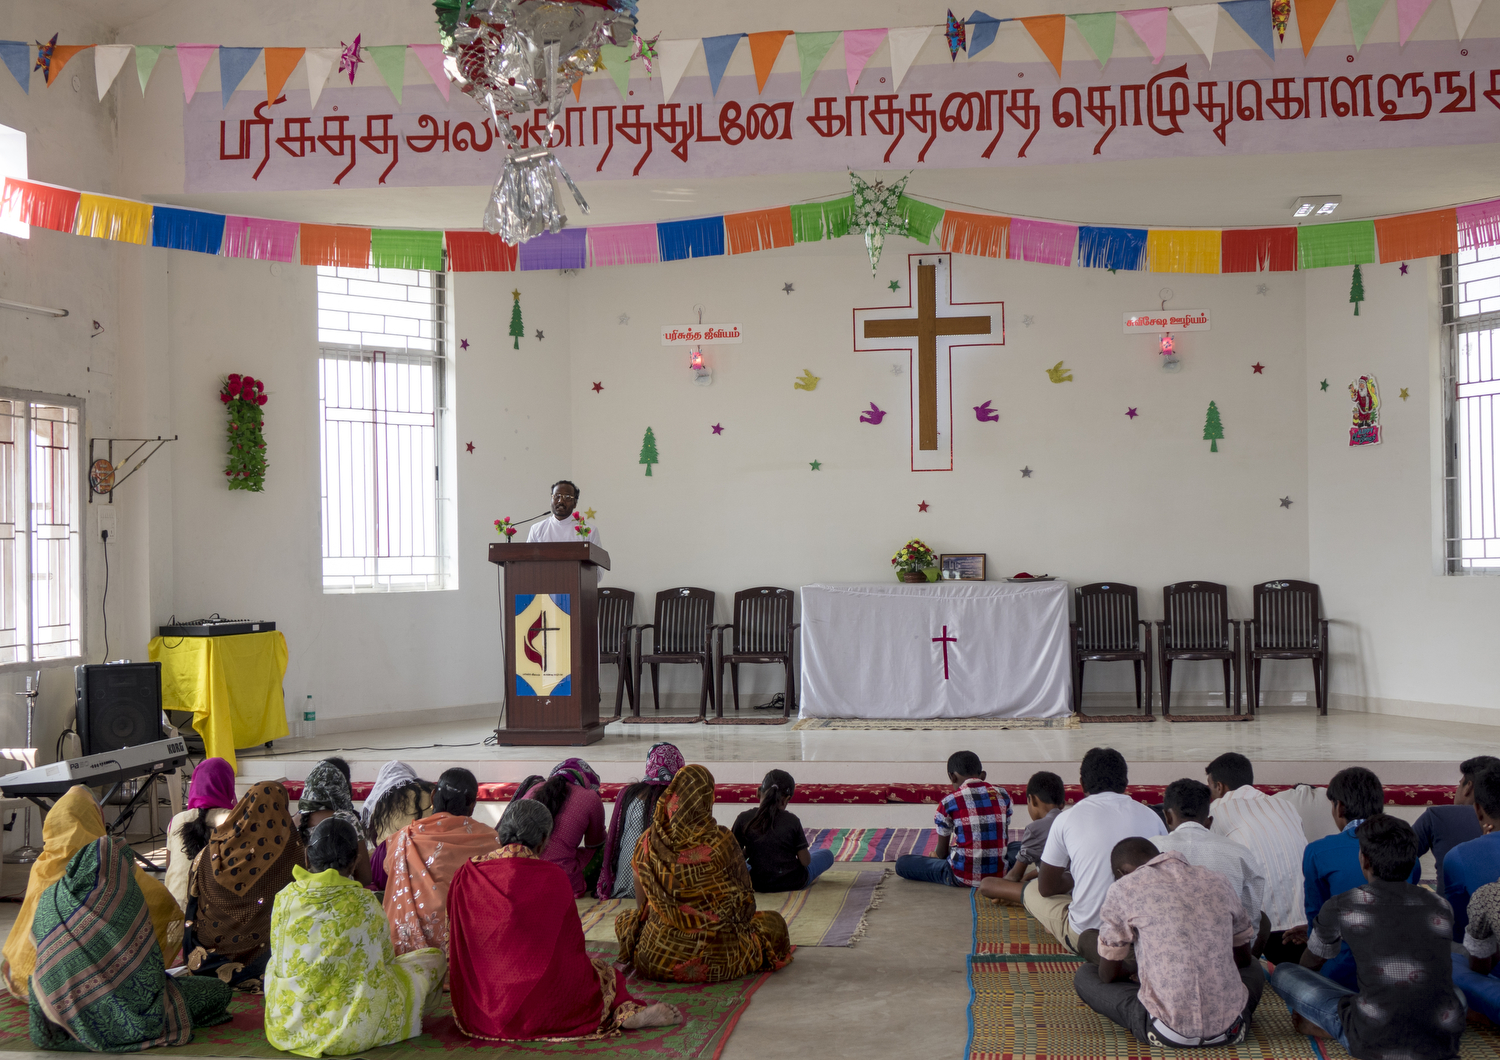 Charles Finny. T - The Christian people of Kalaignar Nagar worship God in church on Sunday morning. They are respecting their God as they come together for prayer in the only church in the settlement.